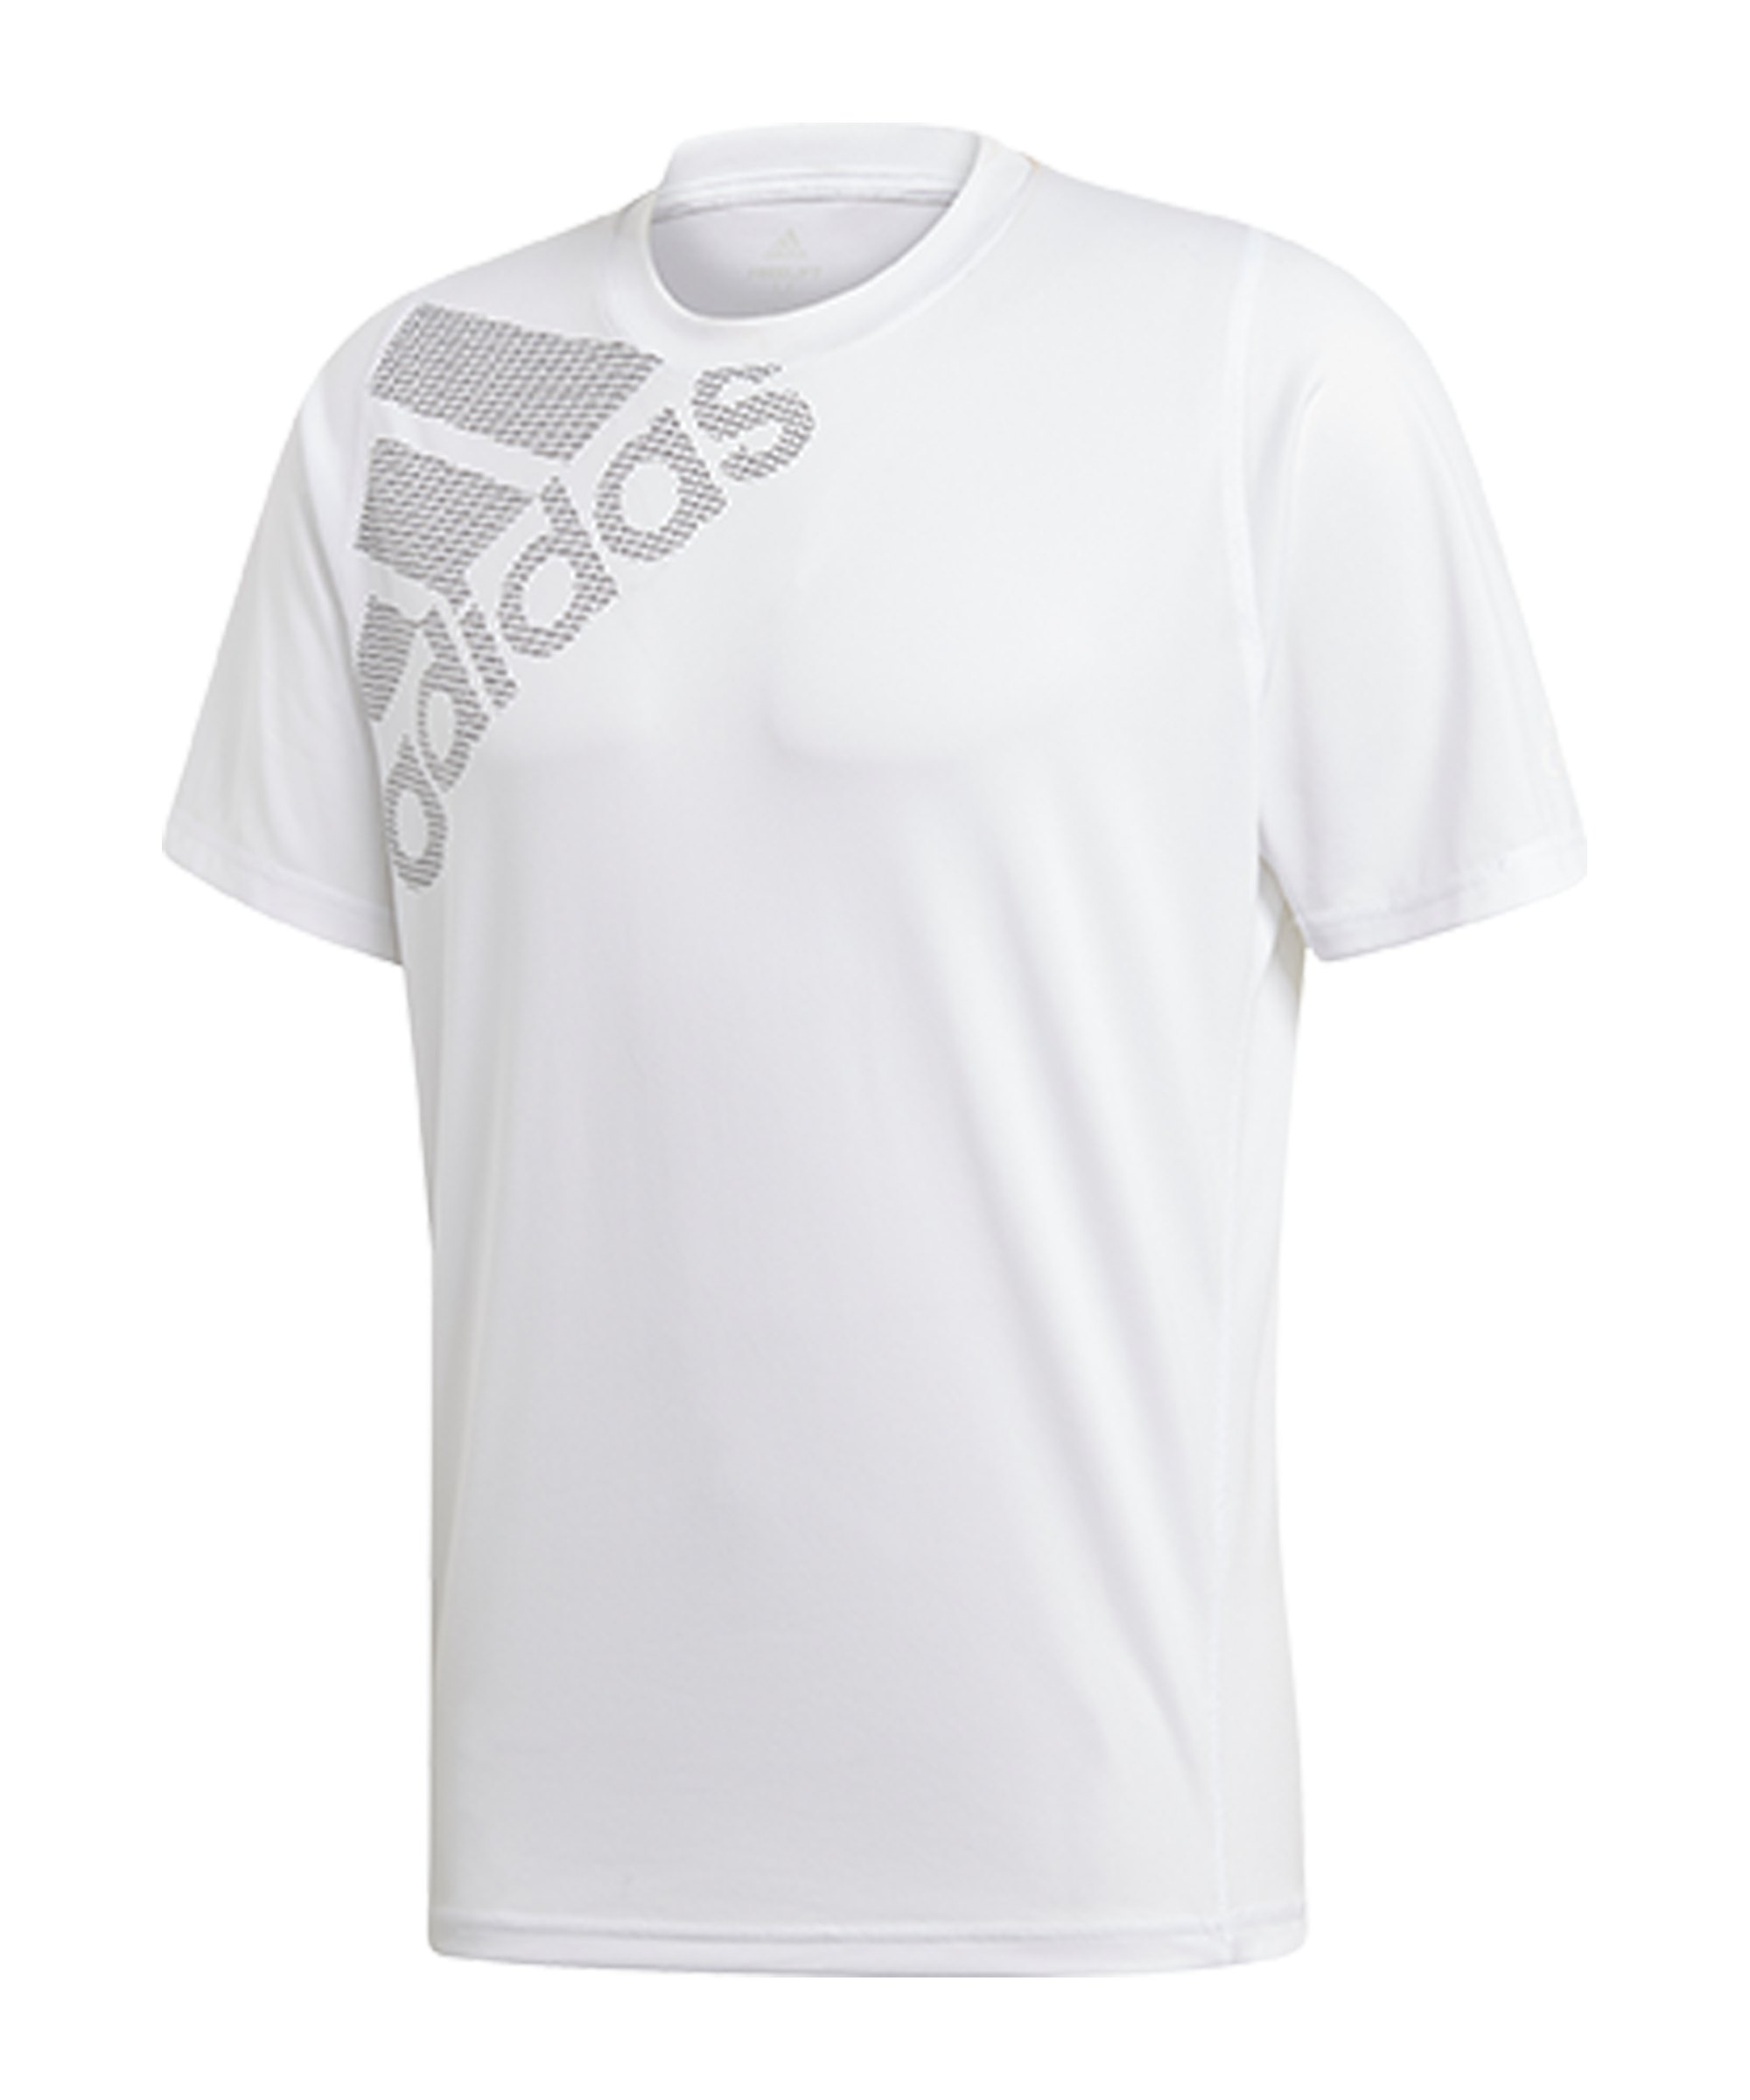 adidas Freelift BoS Graphic T-Shirt Weiss - weiss